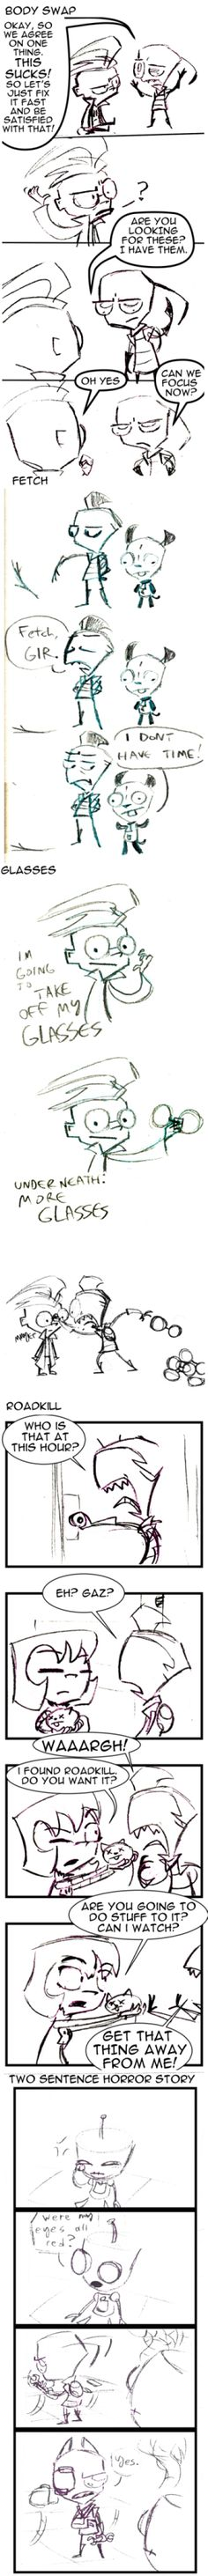 Mega Comic Fun Pack by HideousBlob on deviantART, the first one is my favorite XD adorable :)